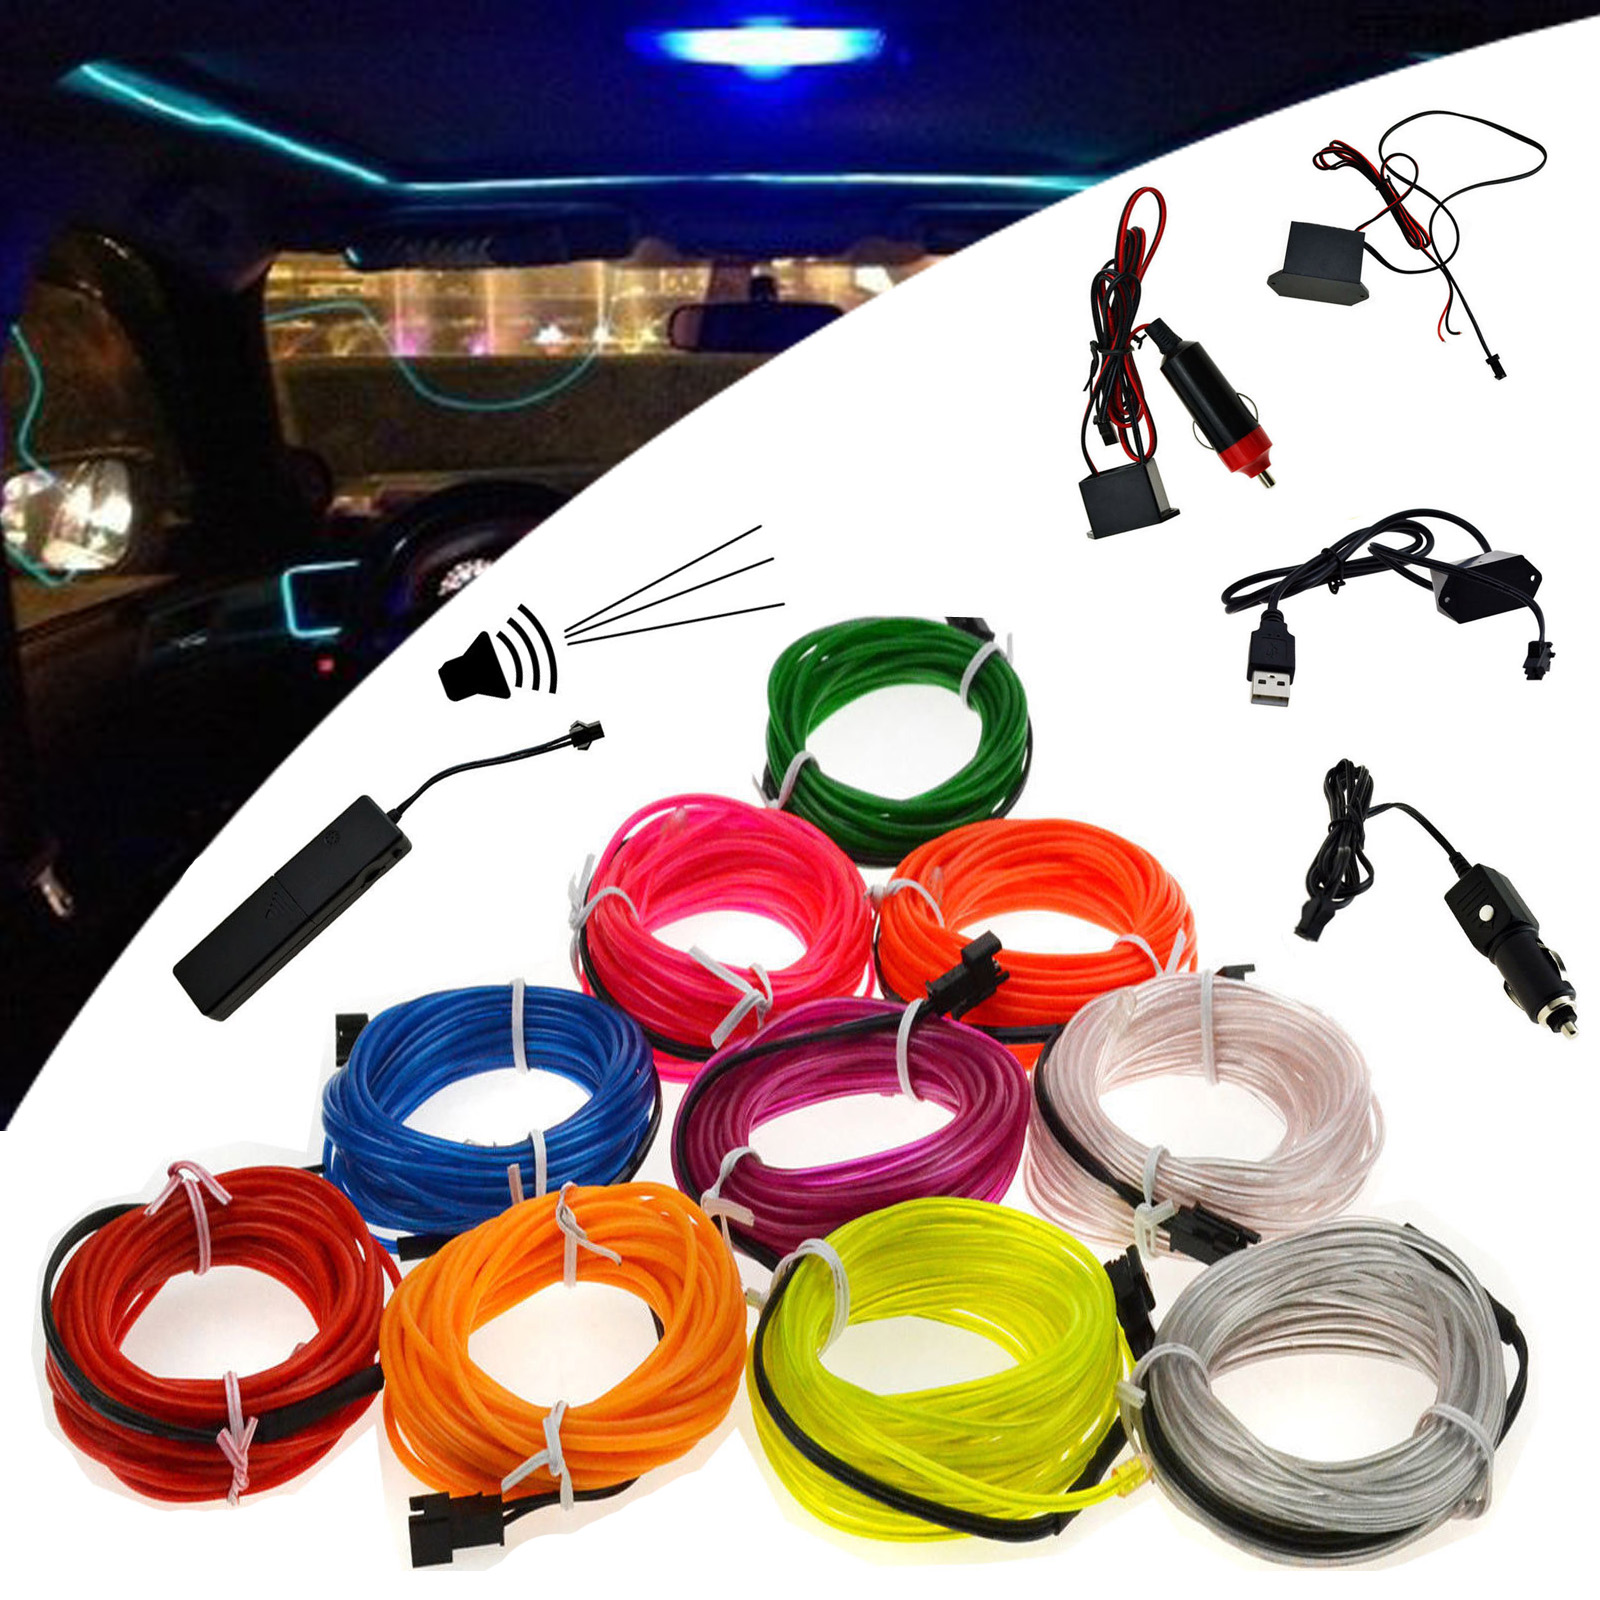 hight resolution of details about led light glow neon el wire strip rope tube car dance party controller st17